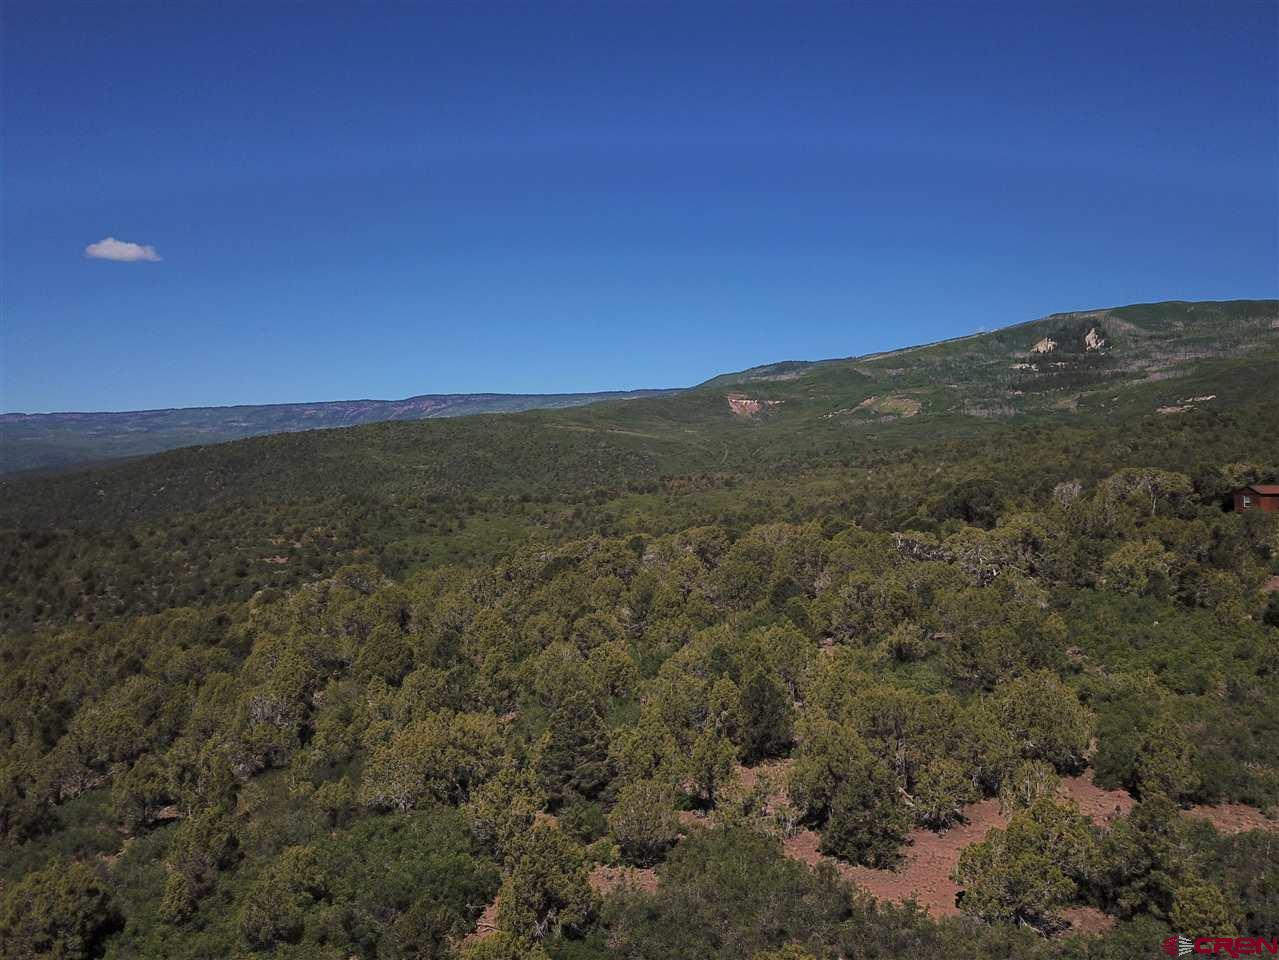 "If you are looking for Colorado Mountain property, peace and quiet with awesome mountain views, this is the perfect location for you.  A little piece of ""Paradise"" located at the base of the Grand Mesa, the largest flat top mesa in the world.  Build your dream home nestled within the 40.15+- acres of undisturbed pinons and junipers.  Property is eligible for a well permit.  No Covenants, Deed Restrictions or HOA, year round access.  Electricity located @ the NE corner of the property.   Please check out the aerial virtual tour of the property to get an ideal of the location and surroundings."